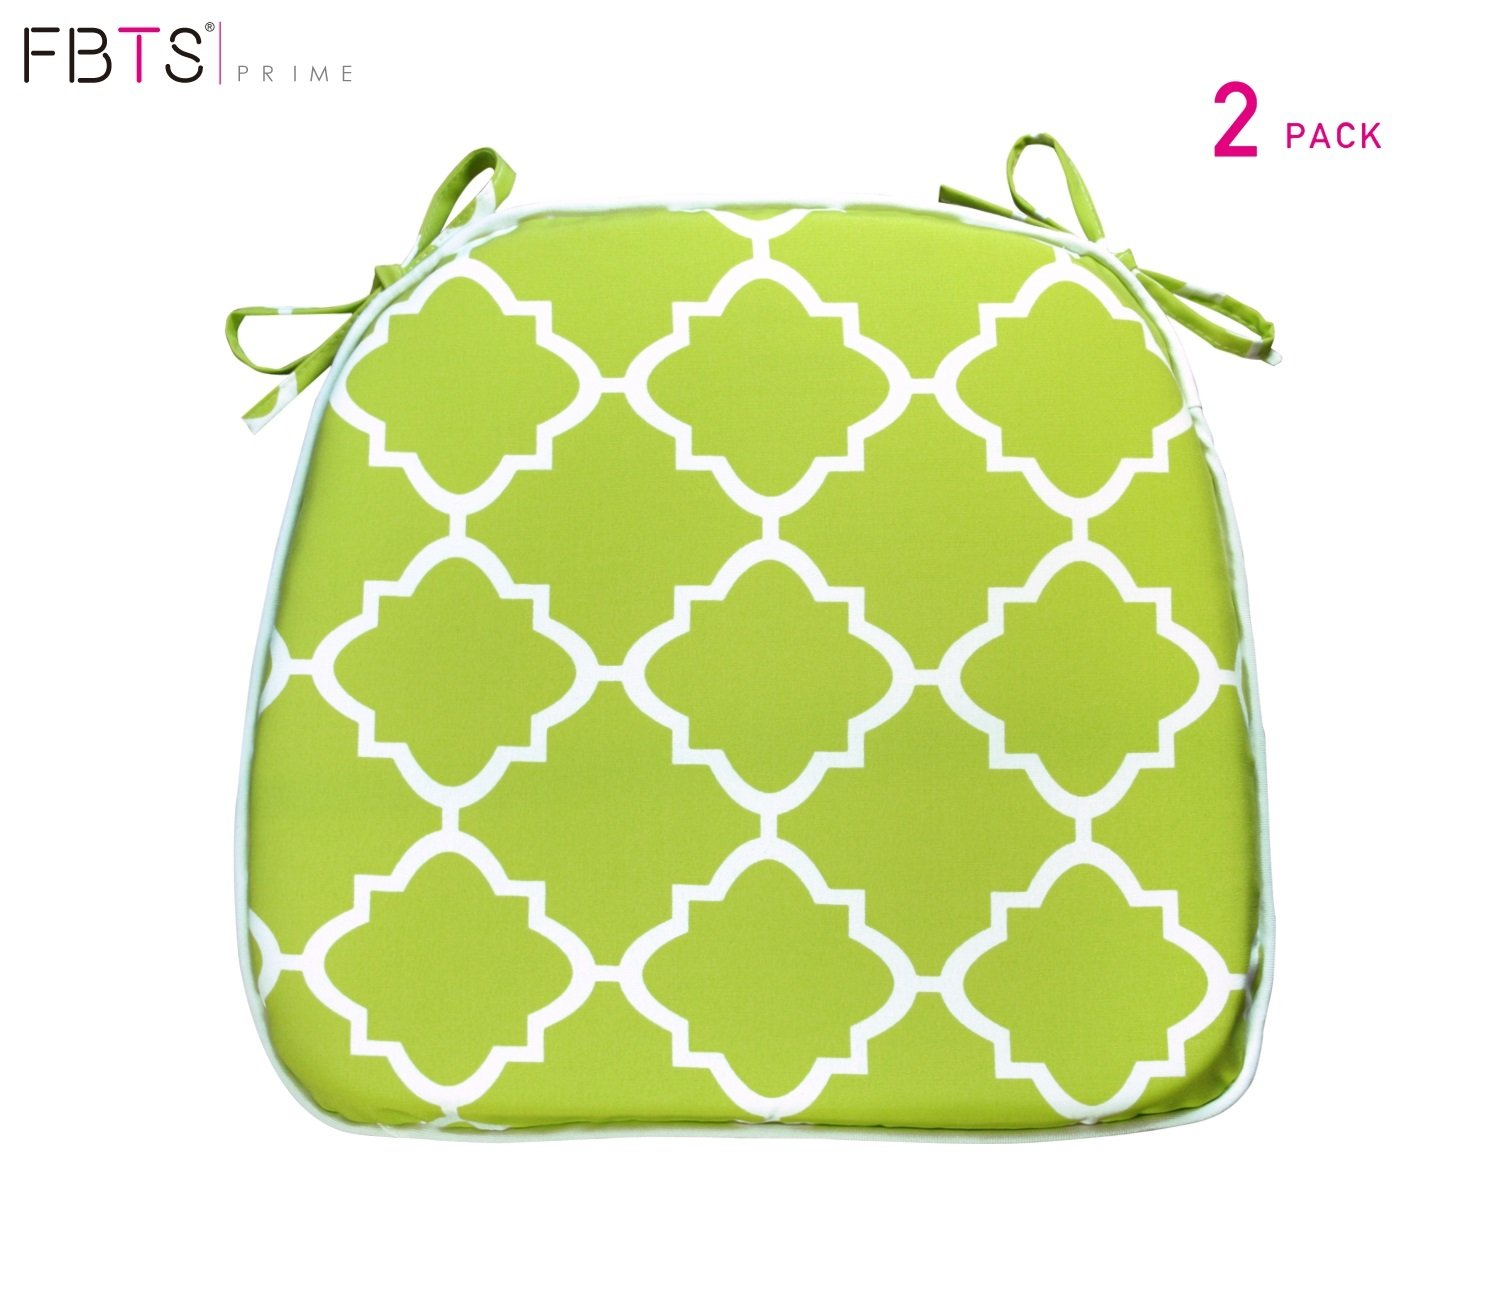 FBTS Prime Outdoor Chair Cushions (Set of 2) 16x17 Inches Patio Seat Cushions Light Green Square Chair Pads for Outdoor Patio Furniture Garden Home Office